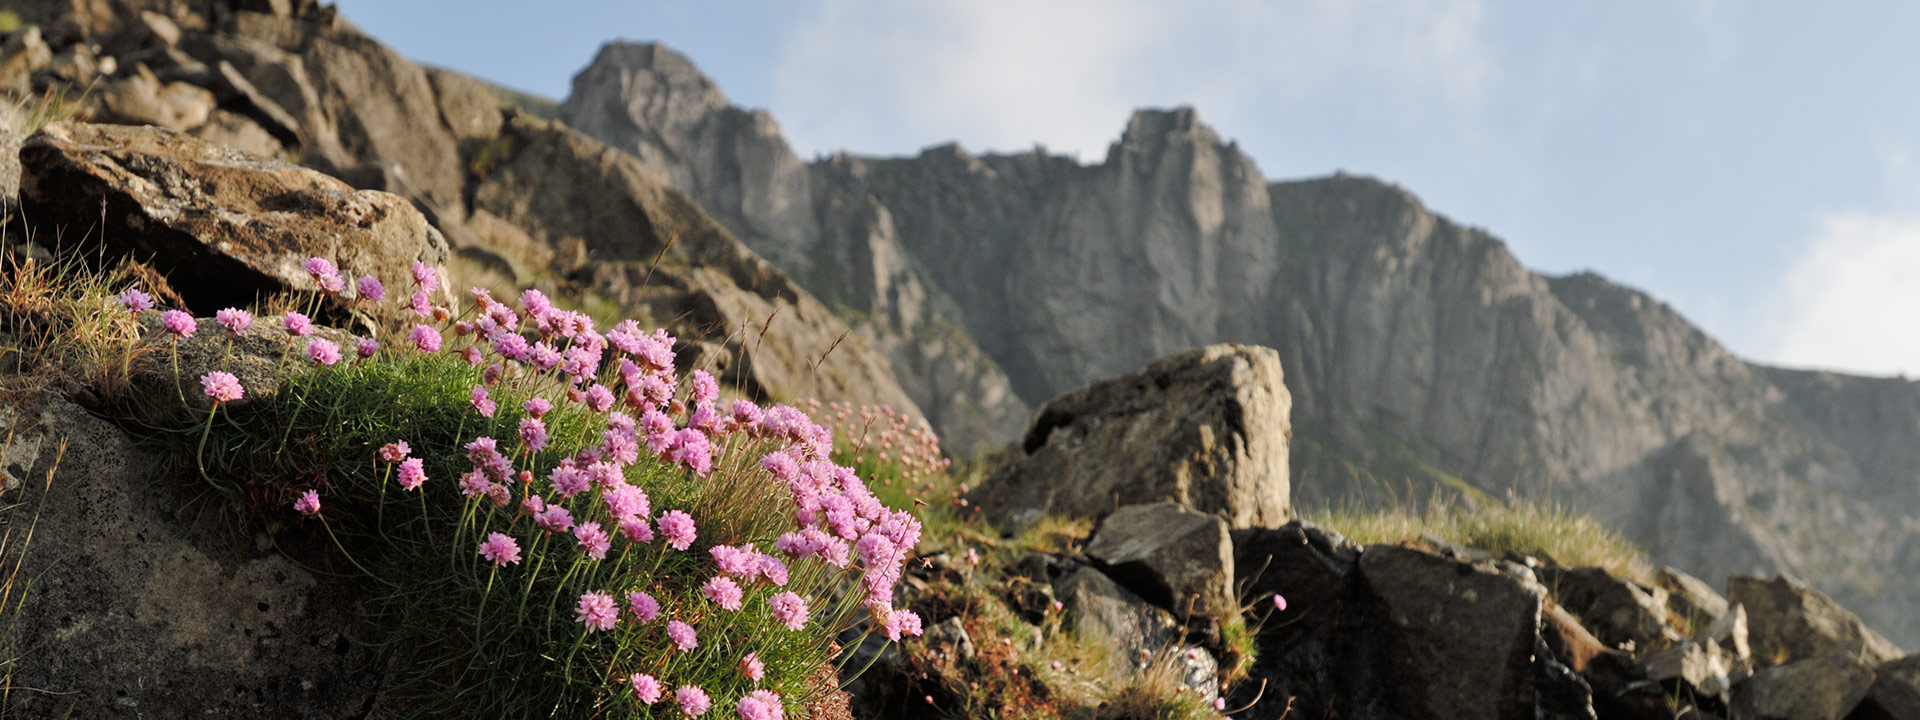 Thrift on the approach to Clogwyn Du'r Arddu. © Ray Wood